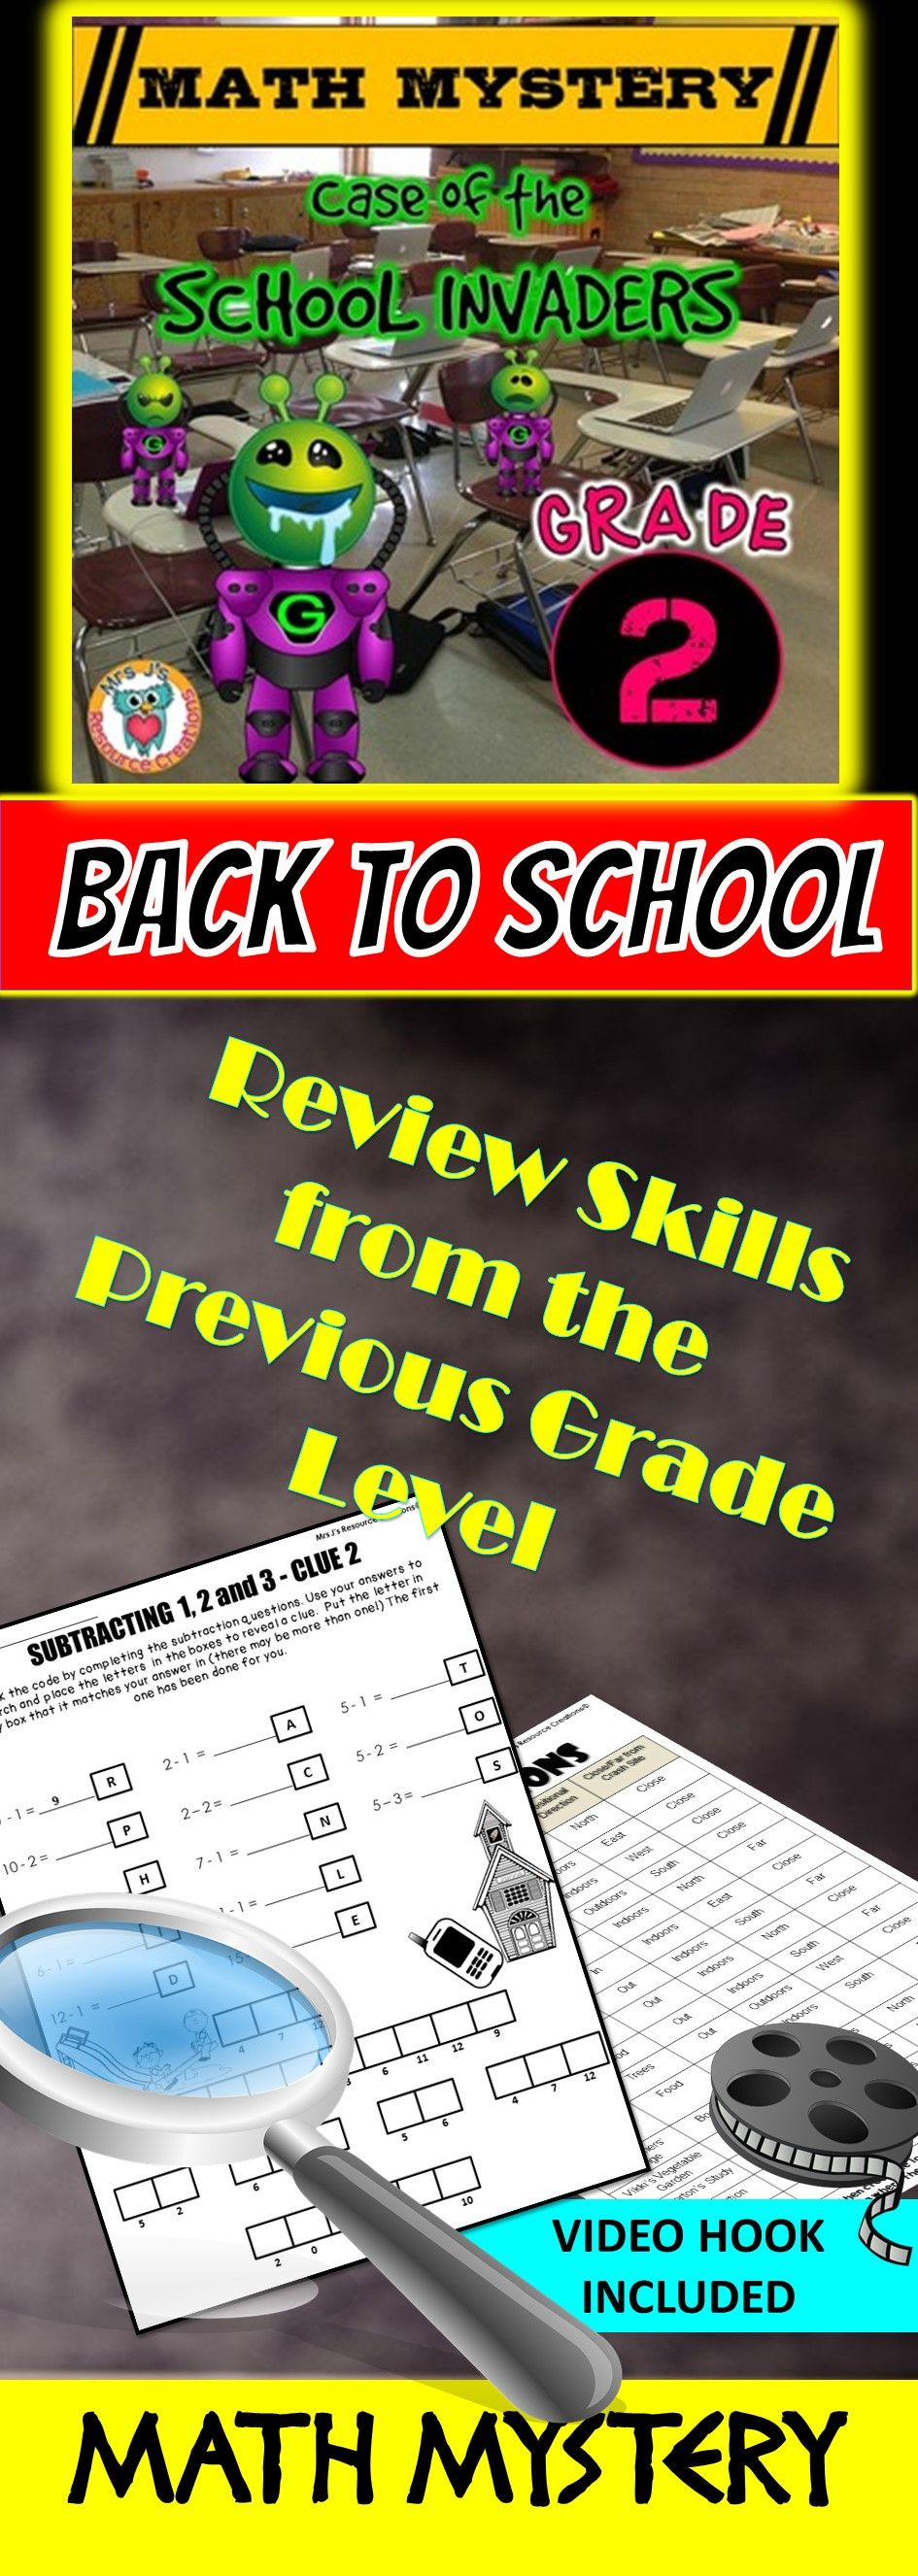 Back To School Math Mystery Case Of The School Invaders Second Grade Edition Great For A Fun Way To As Math Mystery 1st Grade Math Worksheets 1st Grade Math [ 2653 x 945 Pixel ]